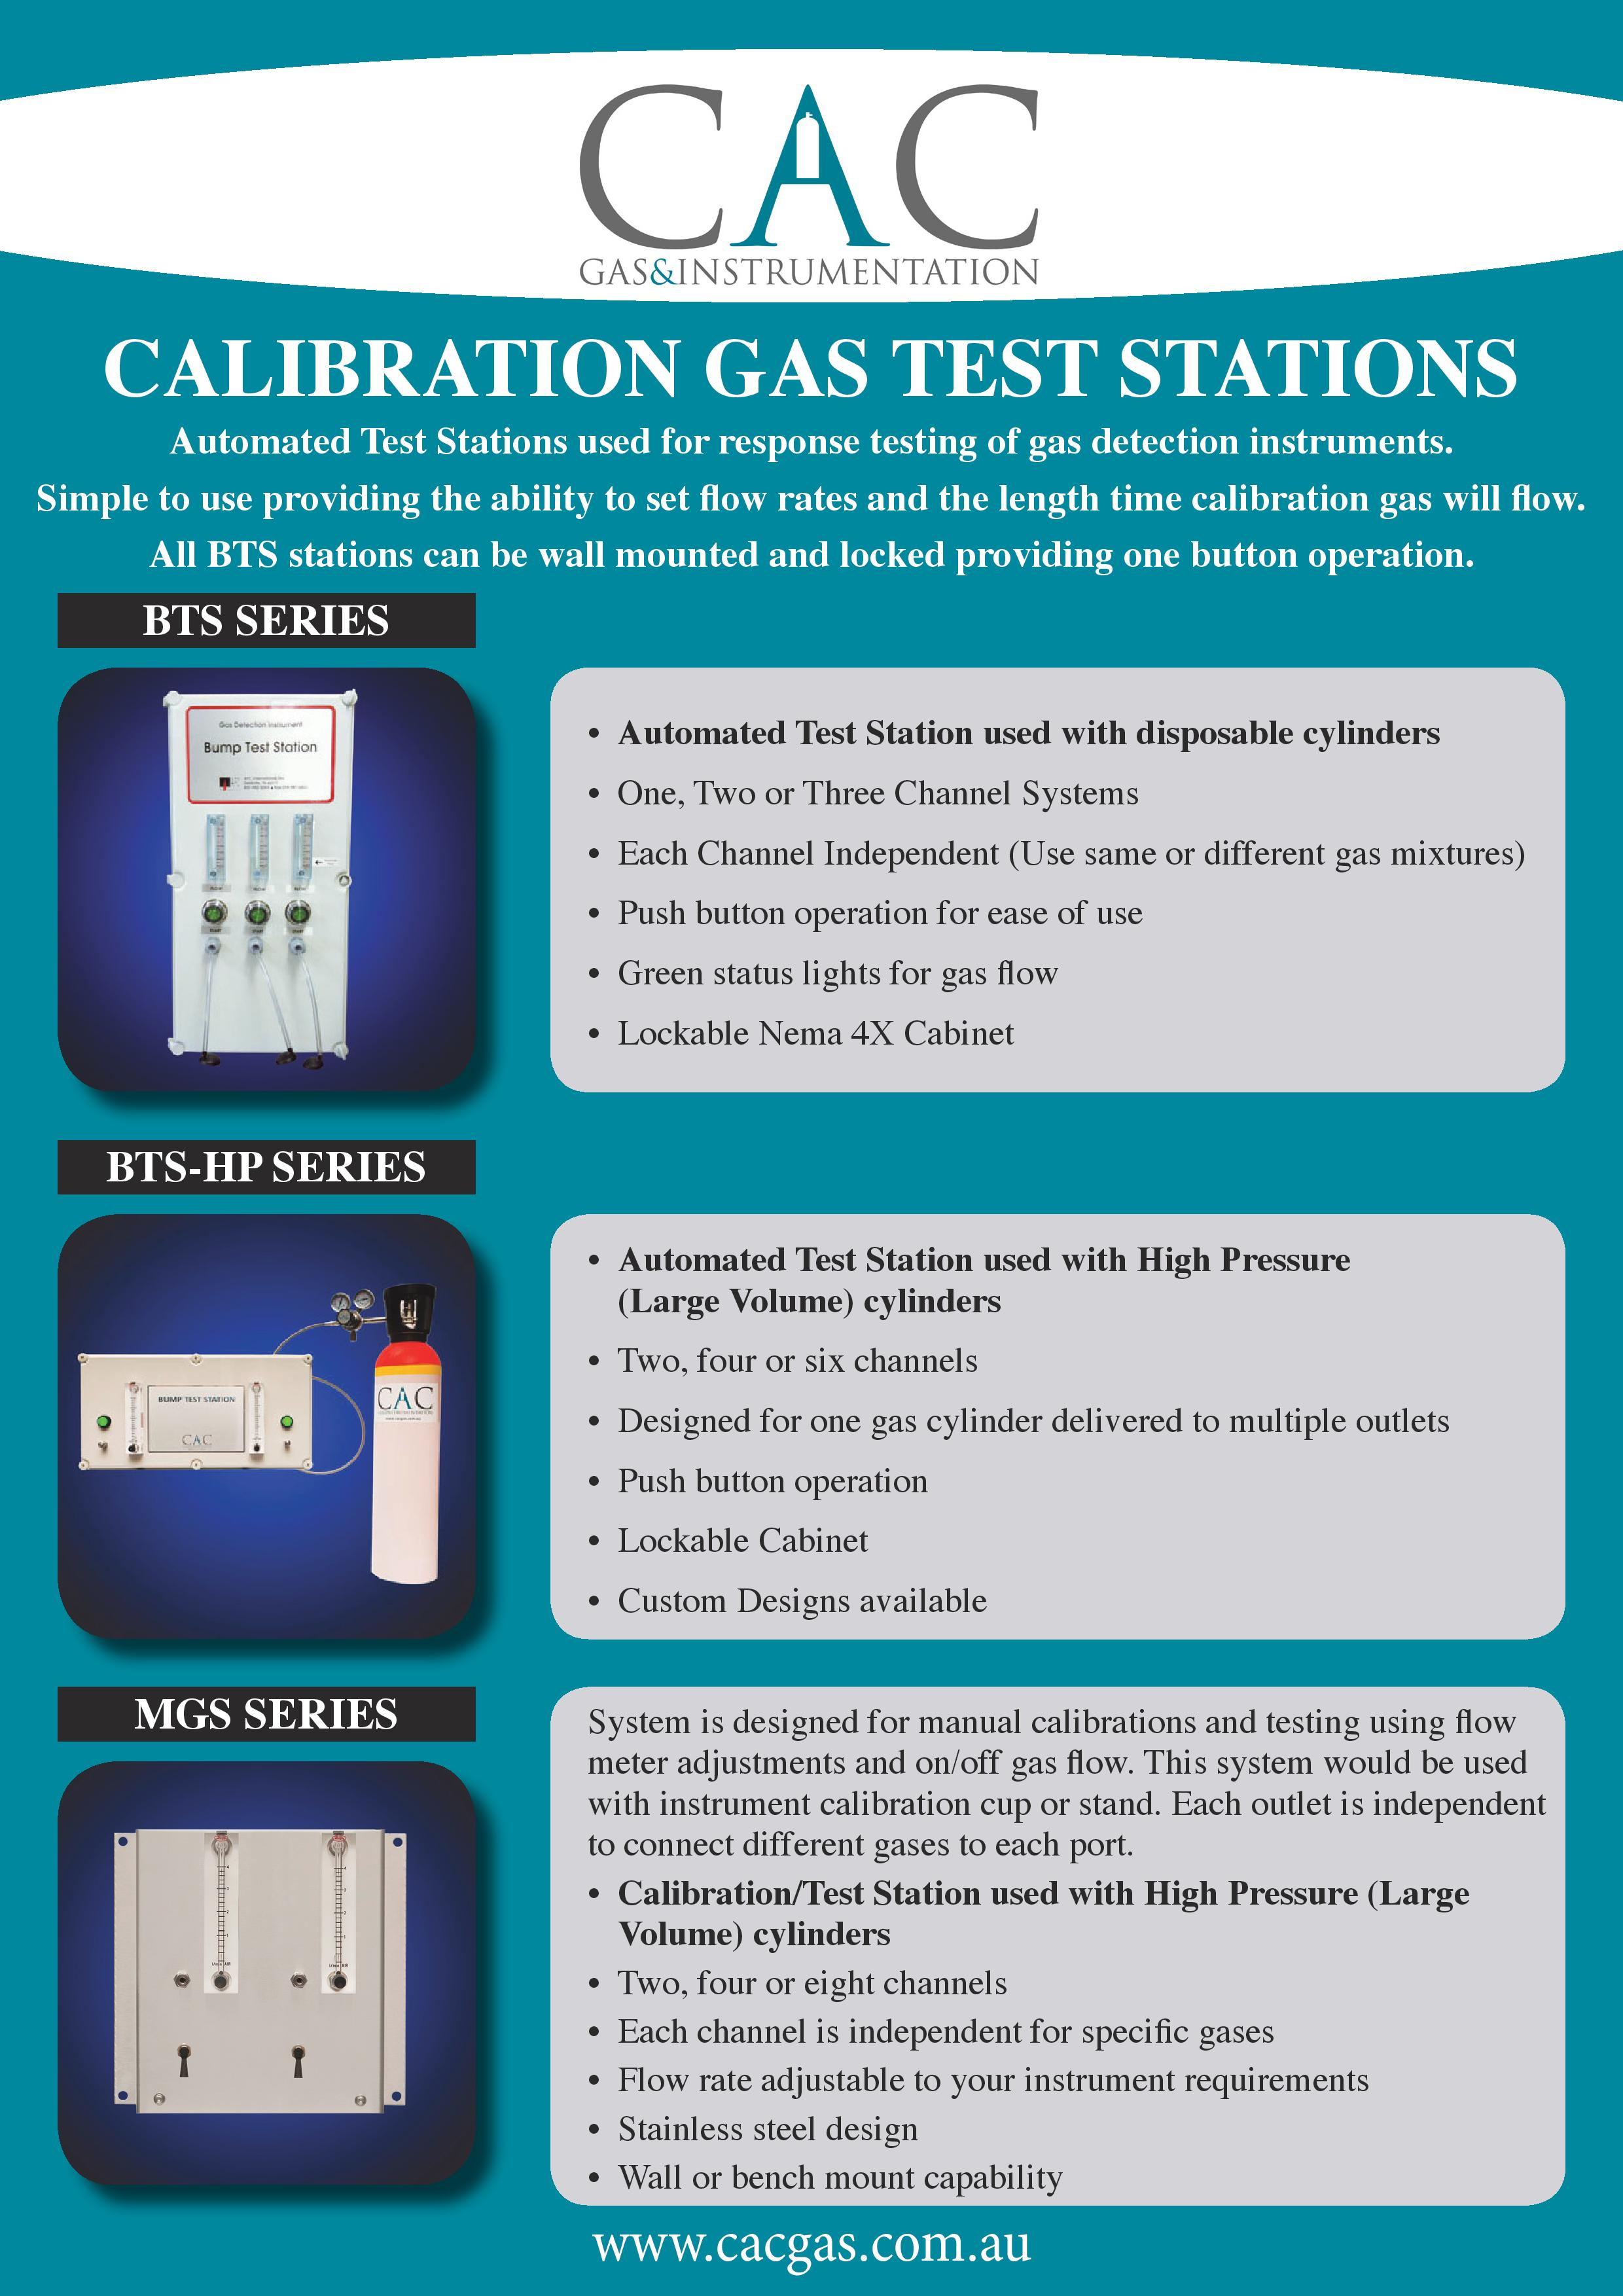 CAC_Gas_Calibration Gas Test Stations